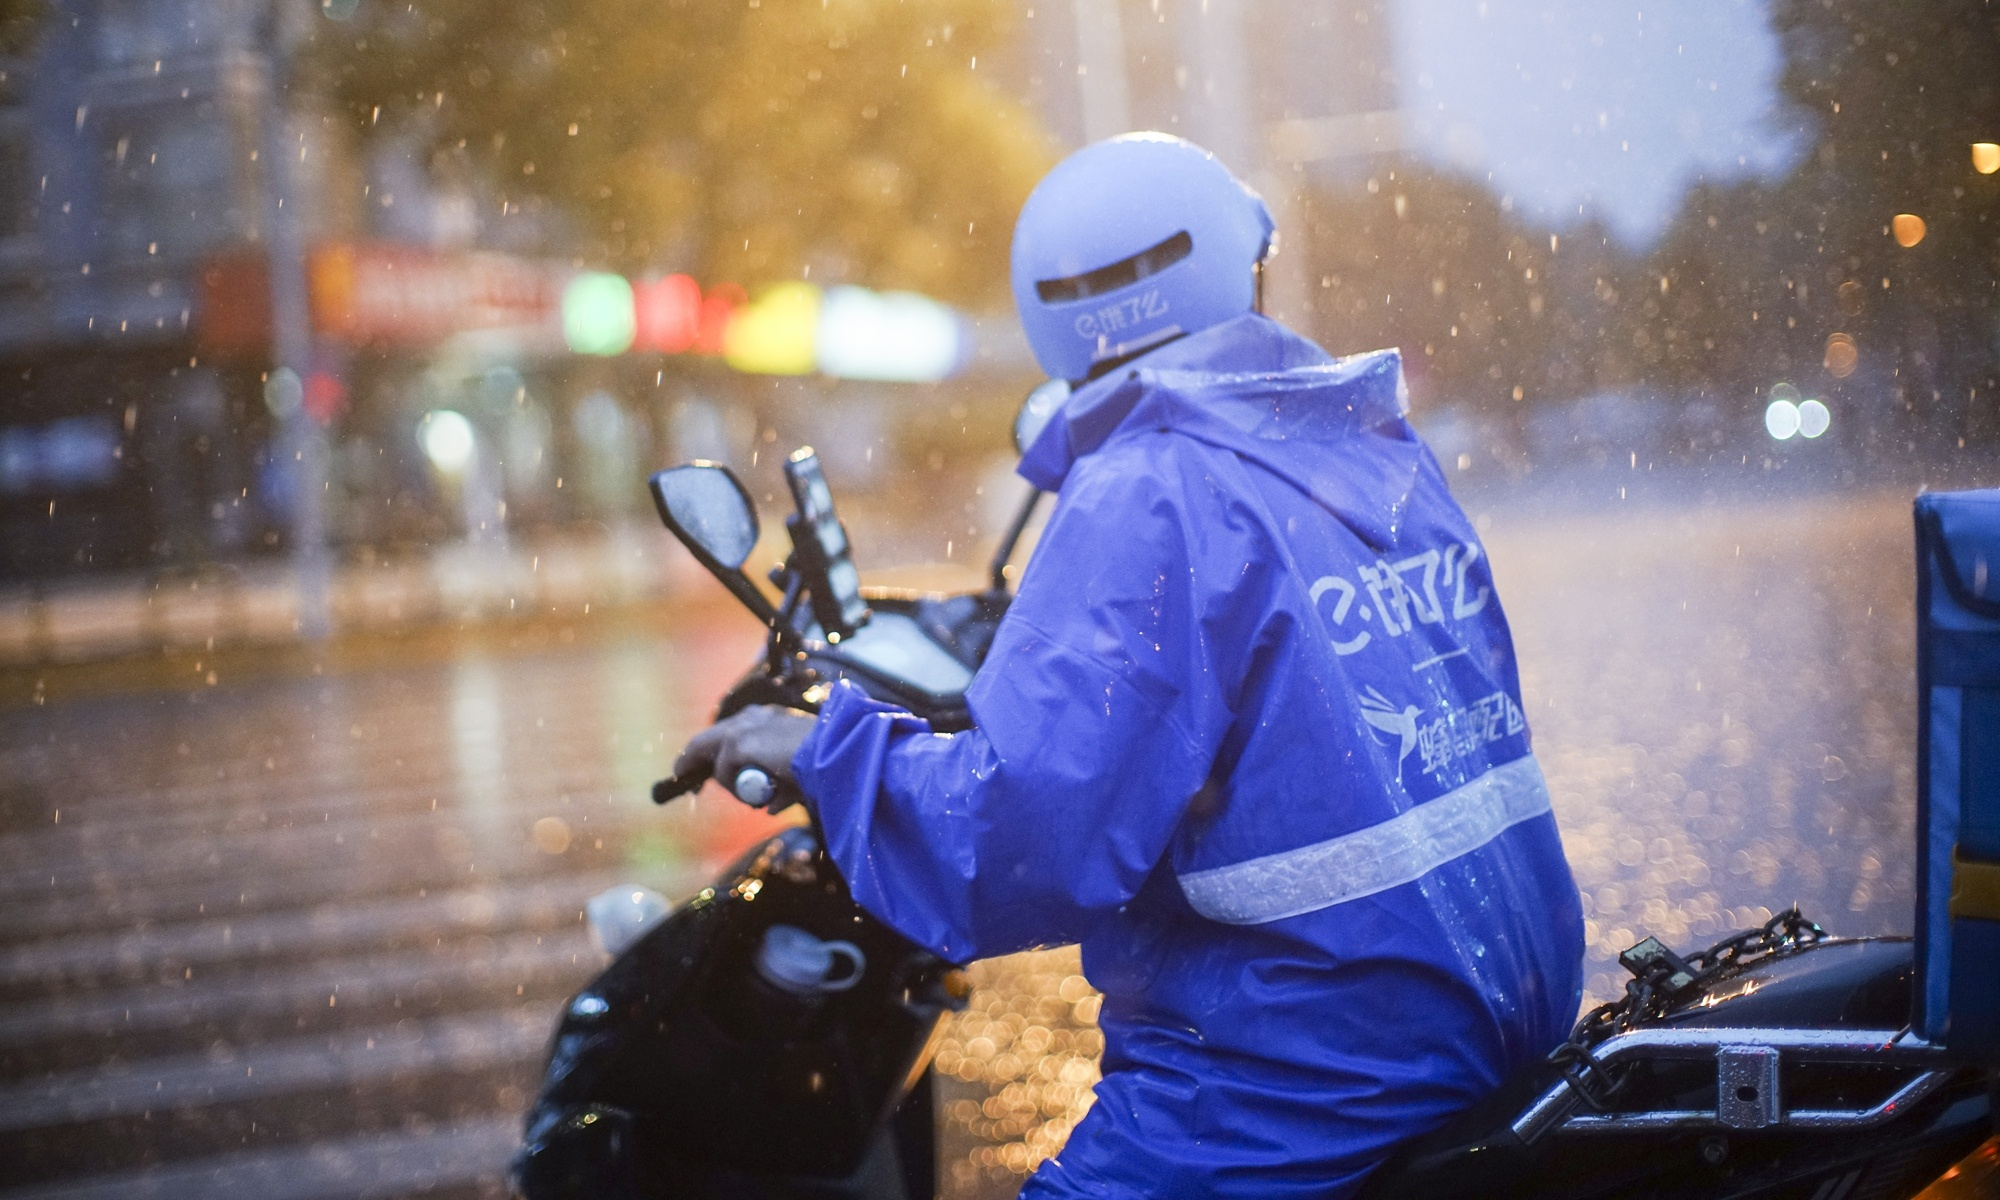 Delivery business faces scrutiny